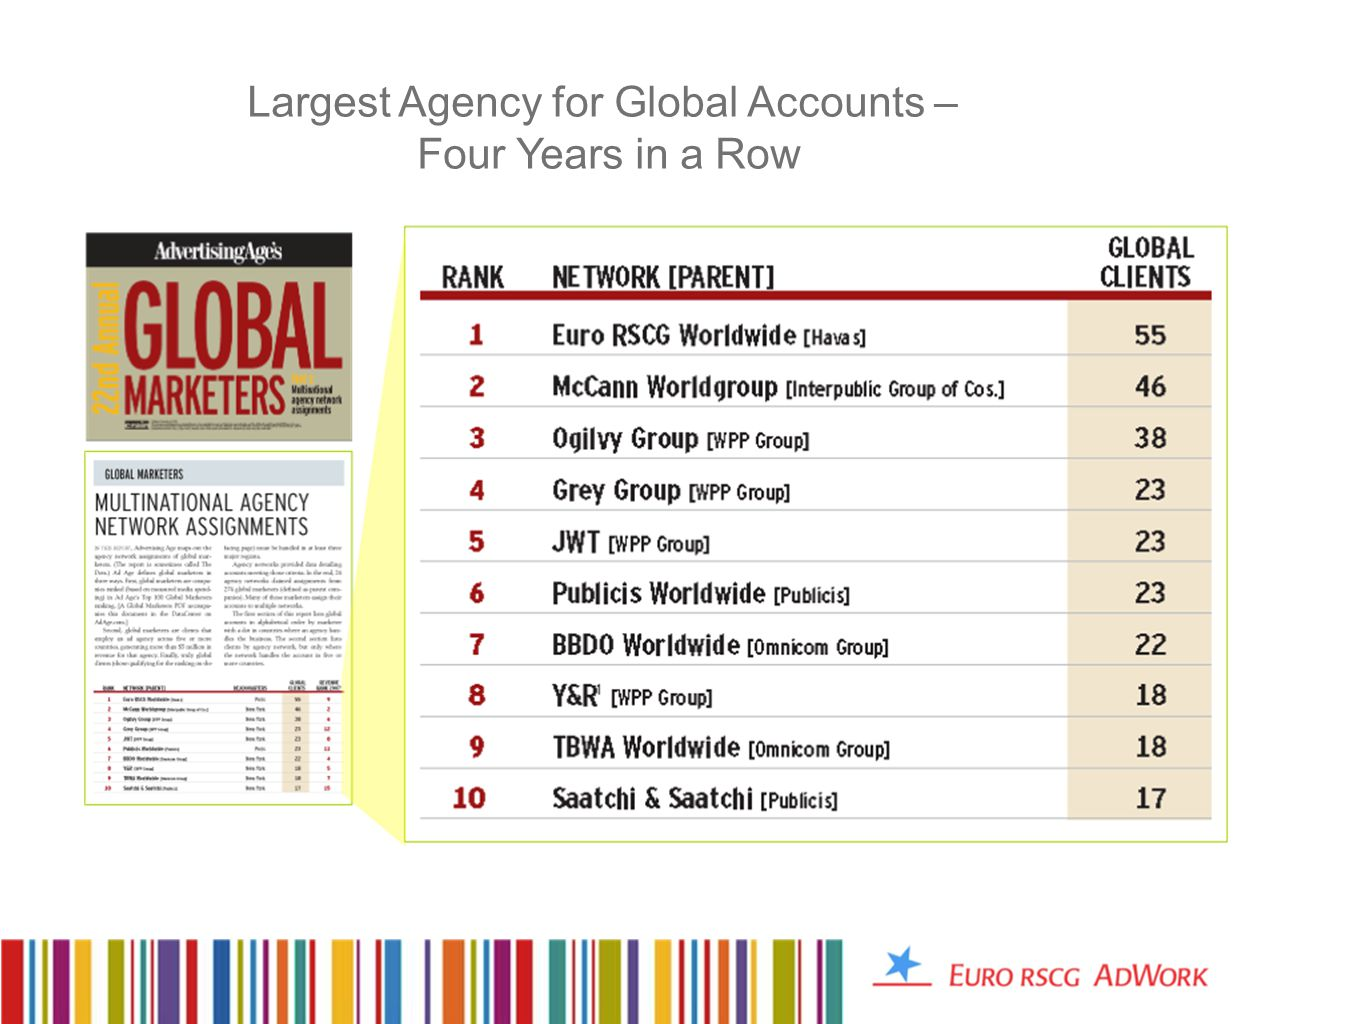 Largest Agency for Global Accounts – Four Years in a Row